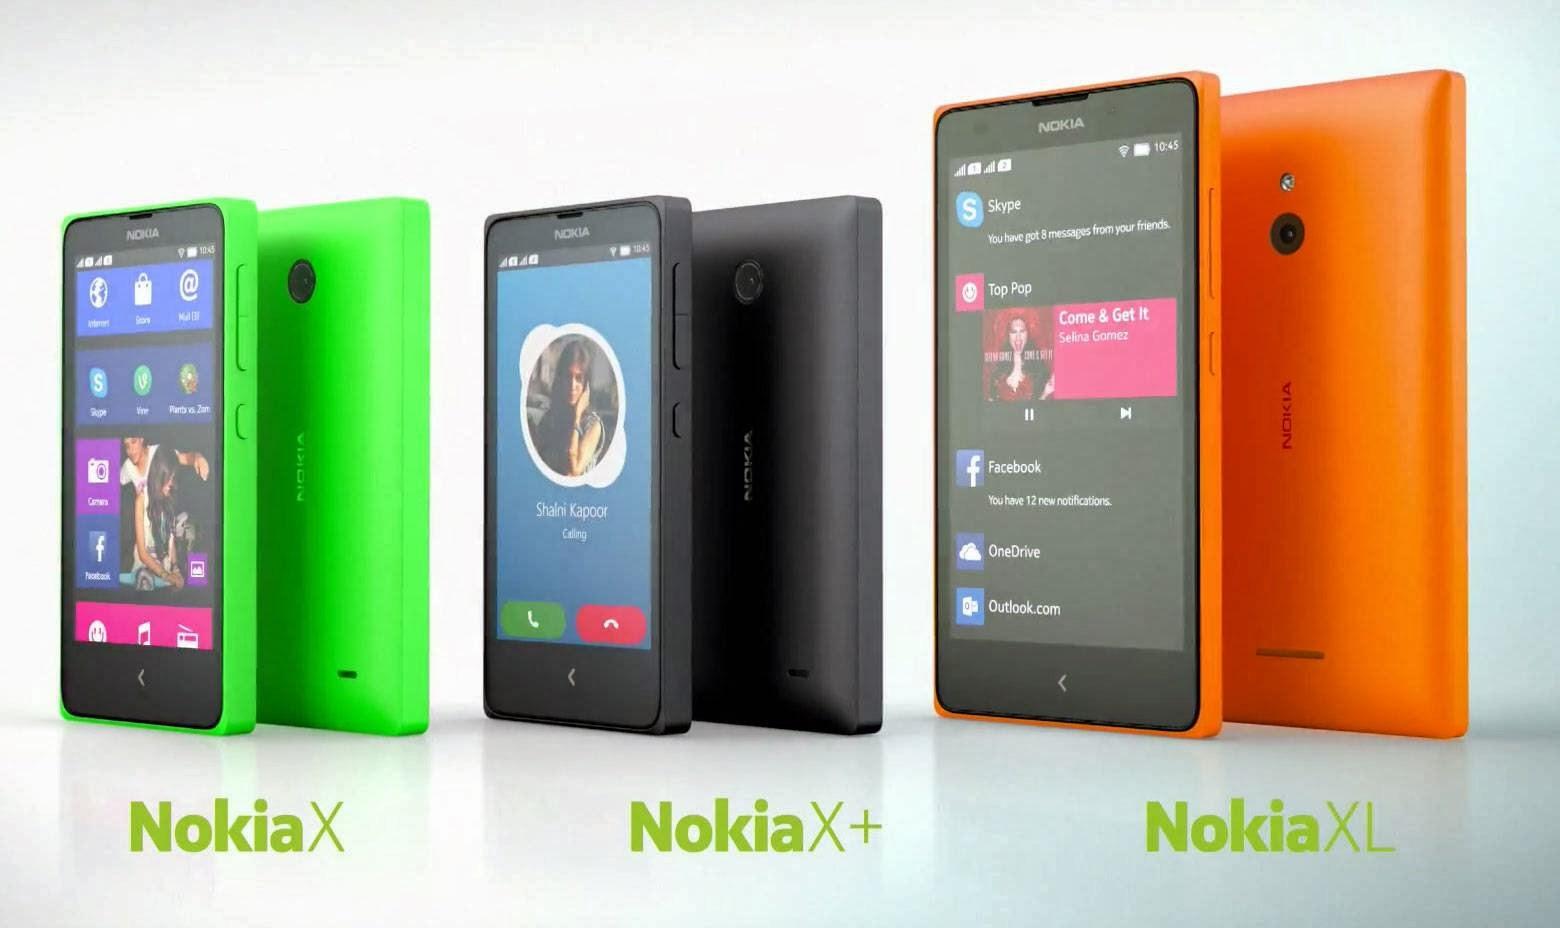 Nokia XL, Nokia X+ Plus and Nokia X